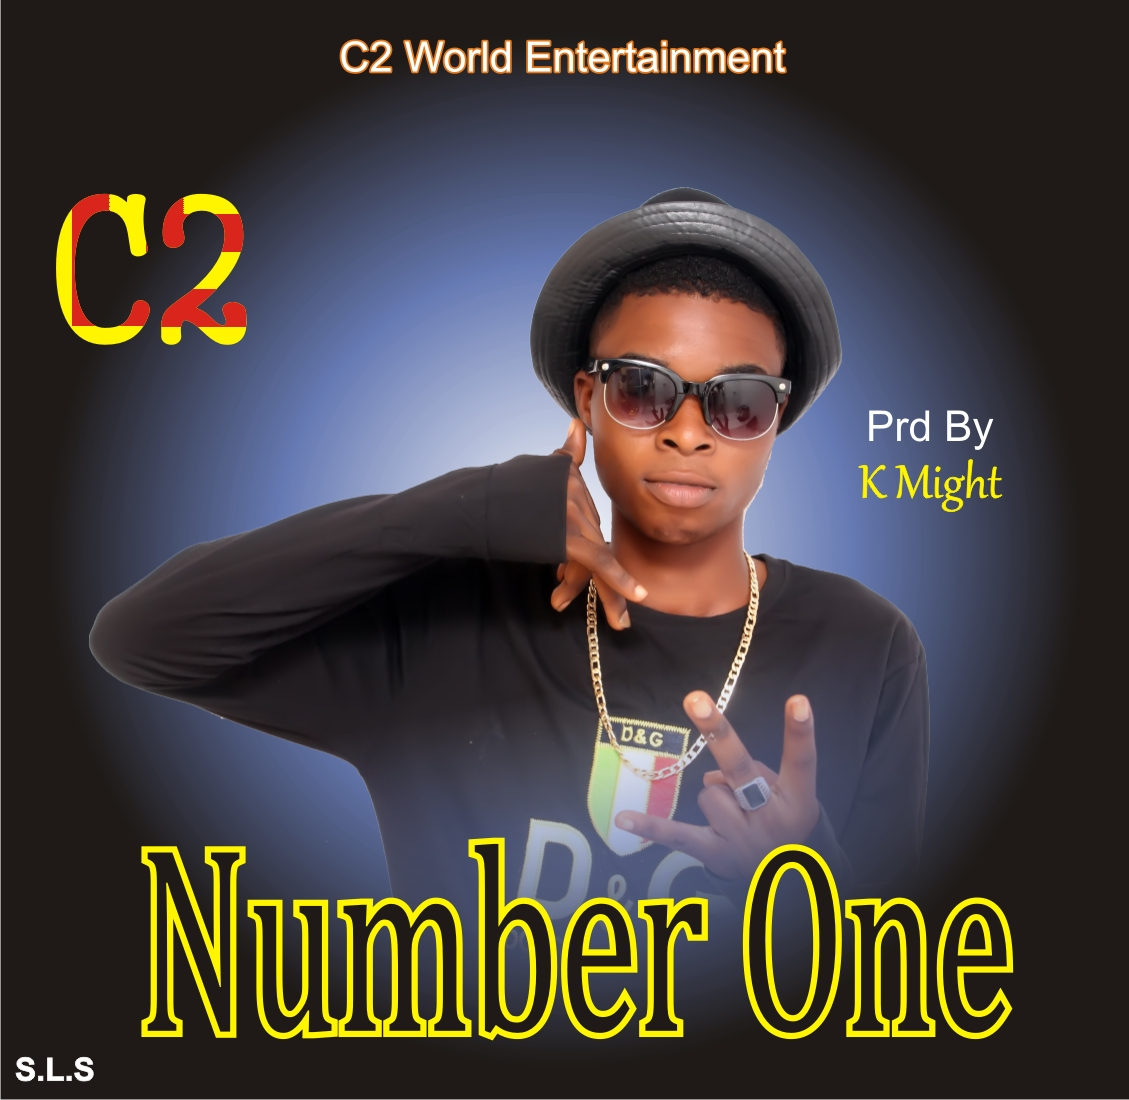 Music: C2 Starboy – Number One (Prod. by K Might)